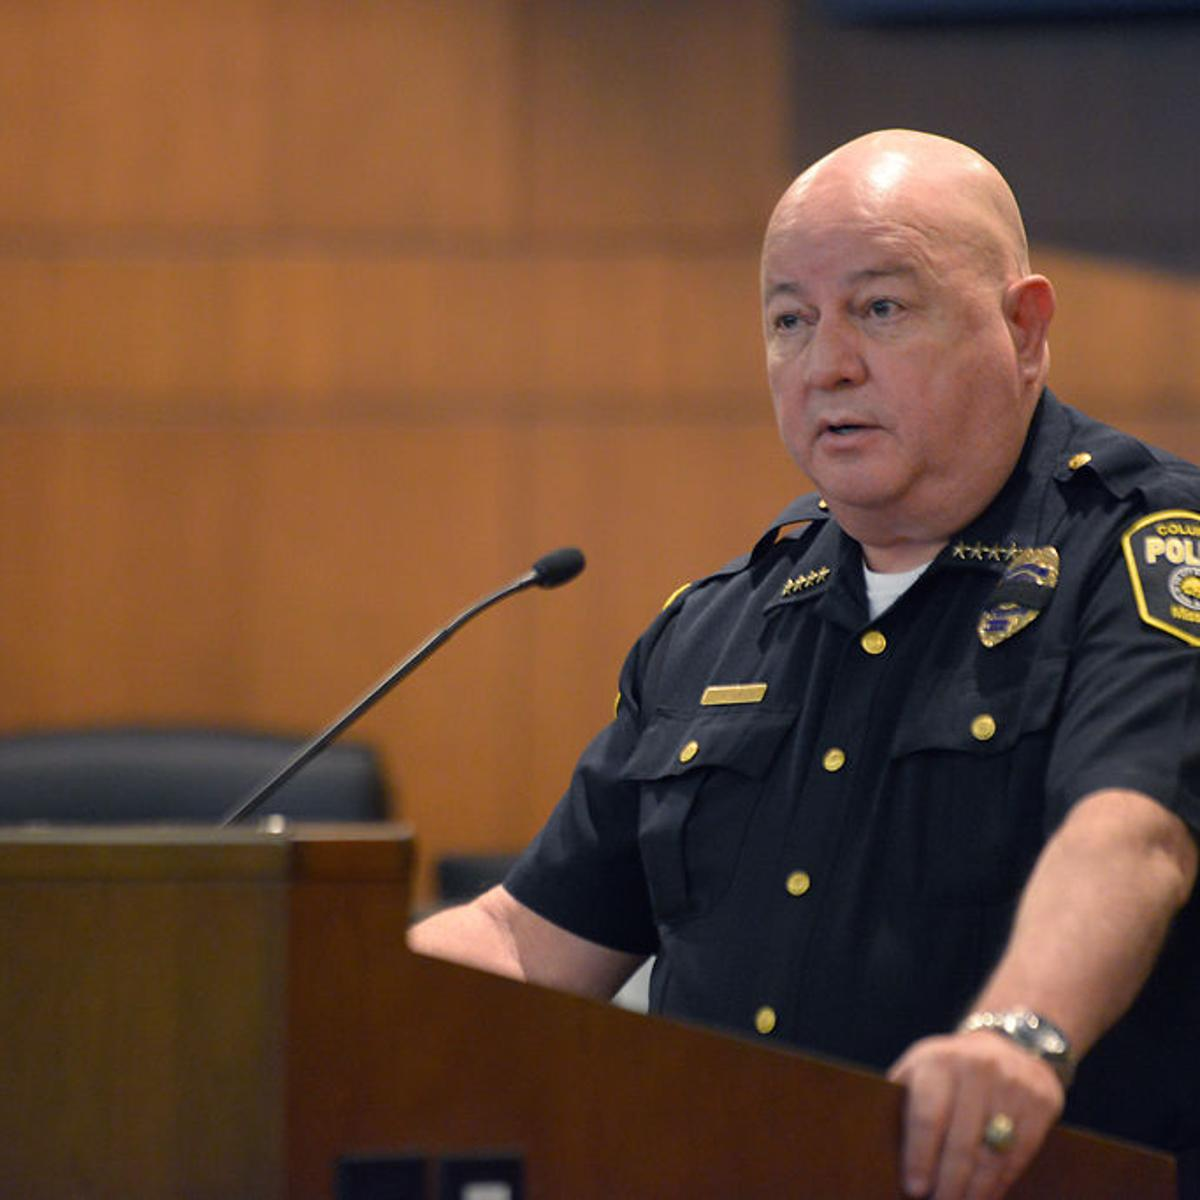 City Council members respond to Burton letter, police morale